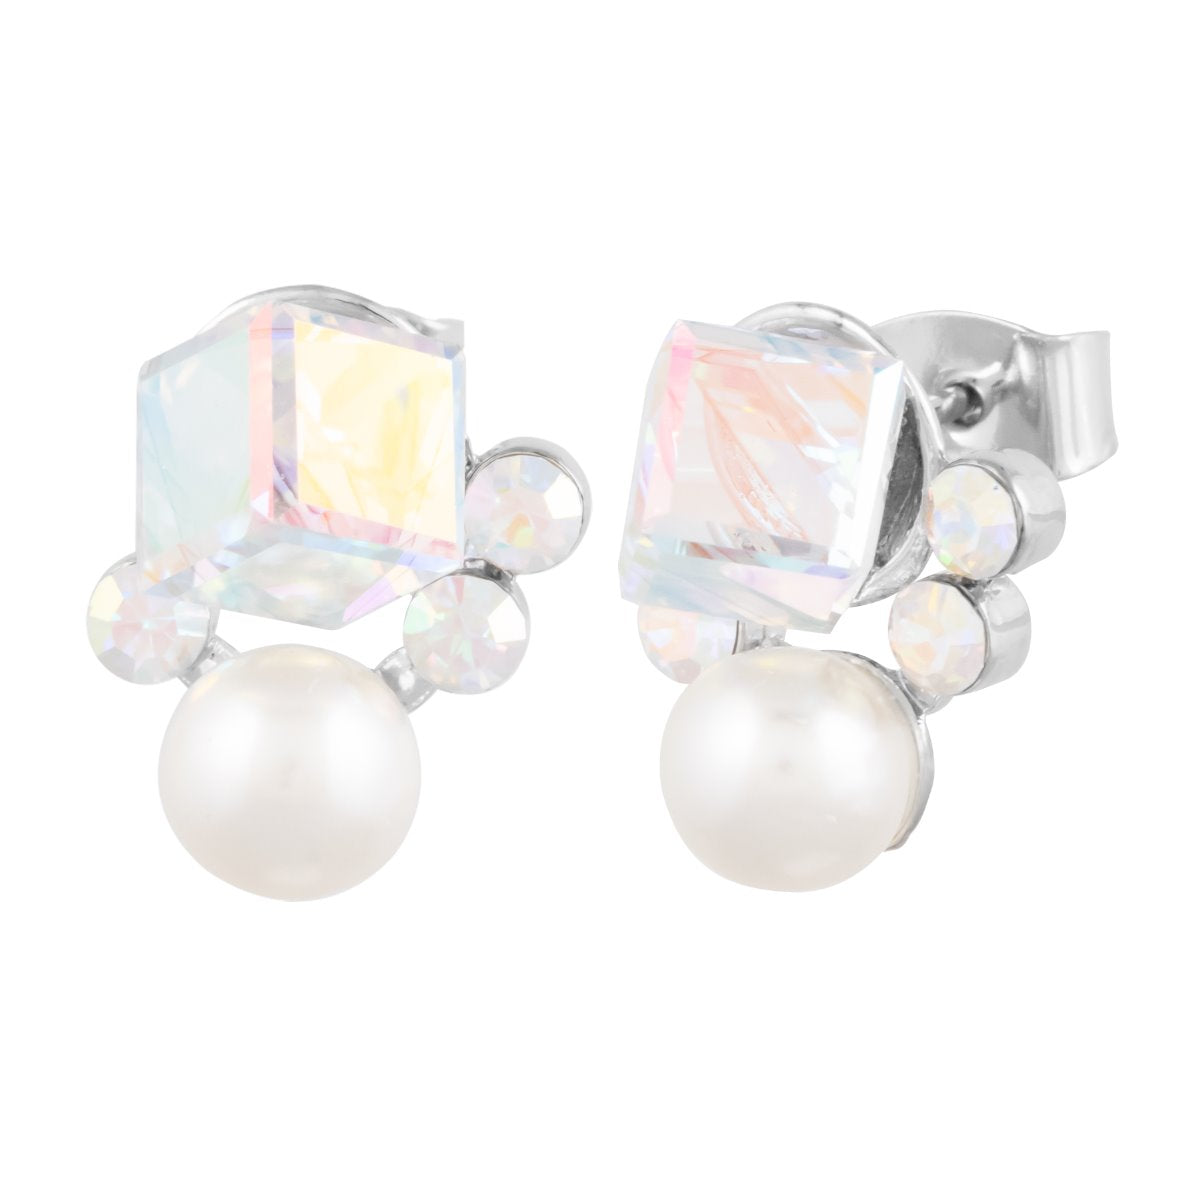 Cube Cluster Earring Aurora Borealis ESSENTIALS FOREVER CRYSTALS